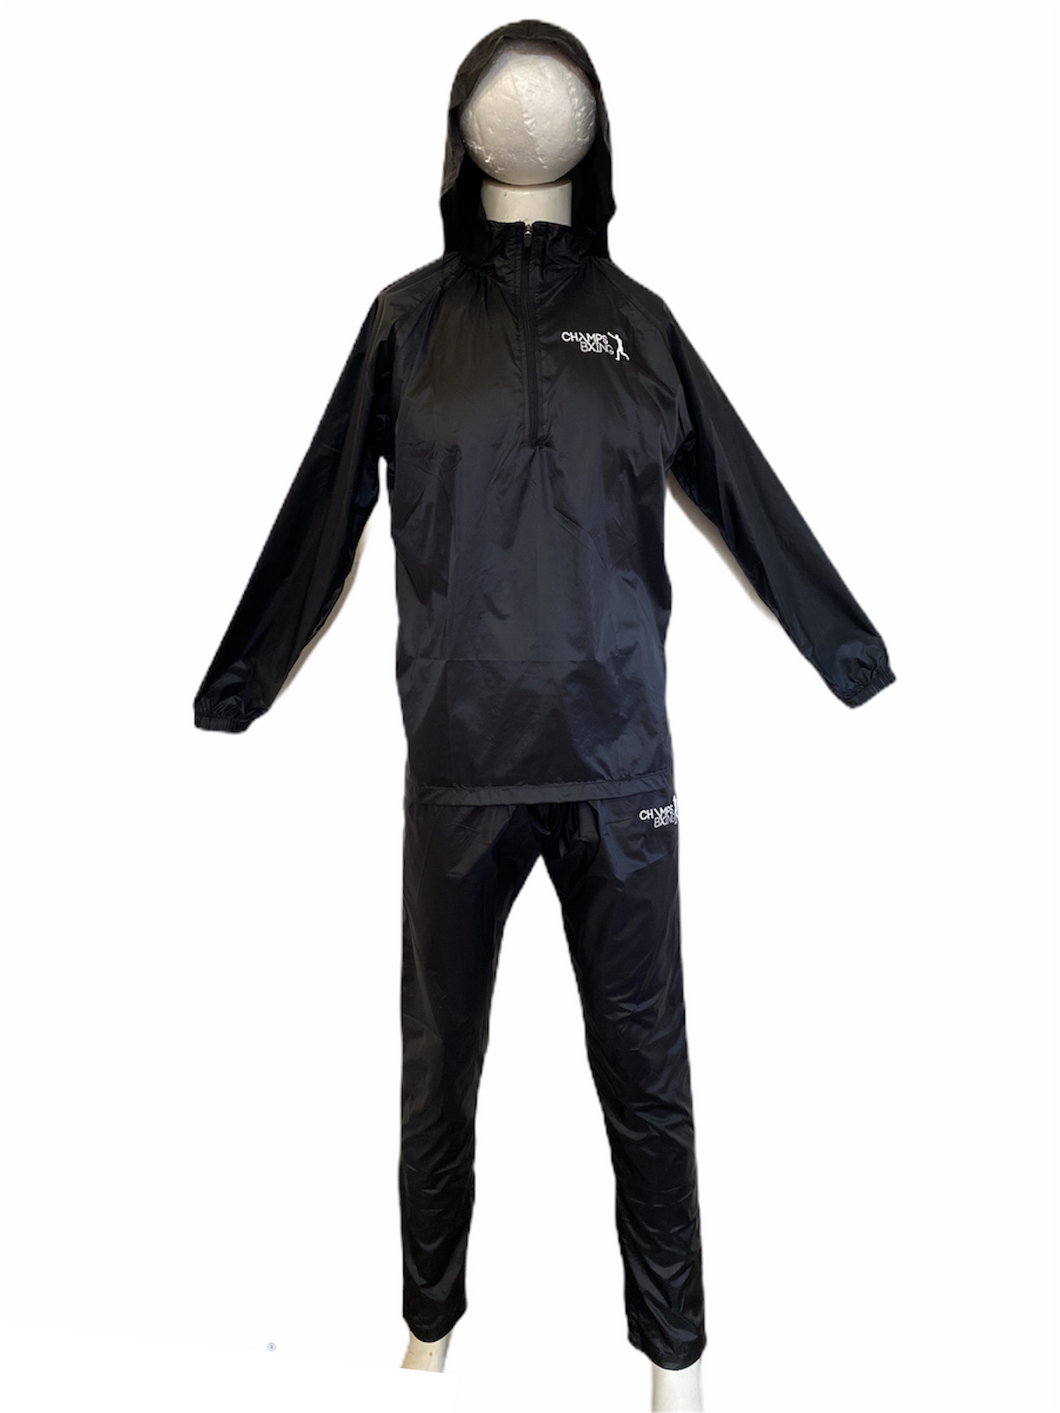 CHAMPS BXING-SAUNA SUITS ULTRA THIN (with hood)